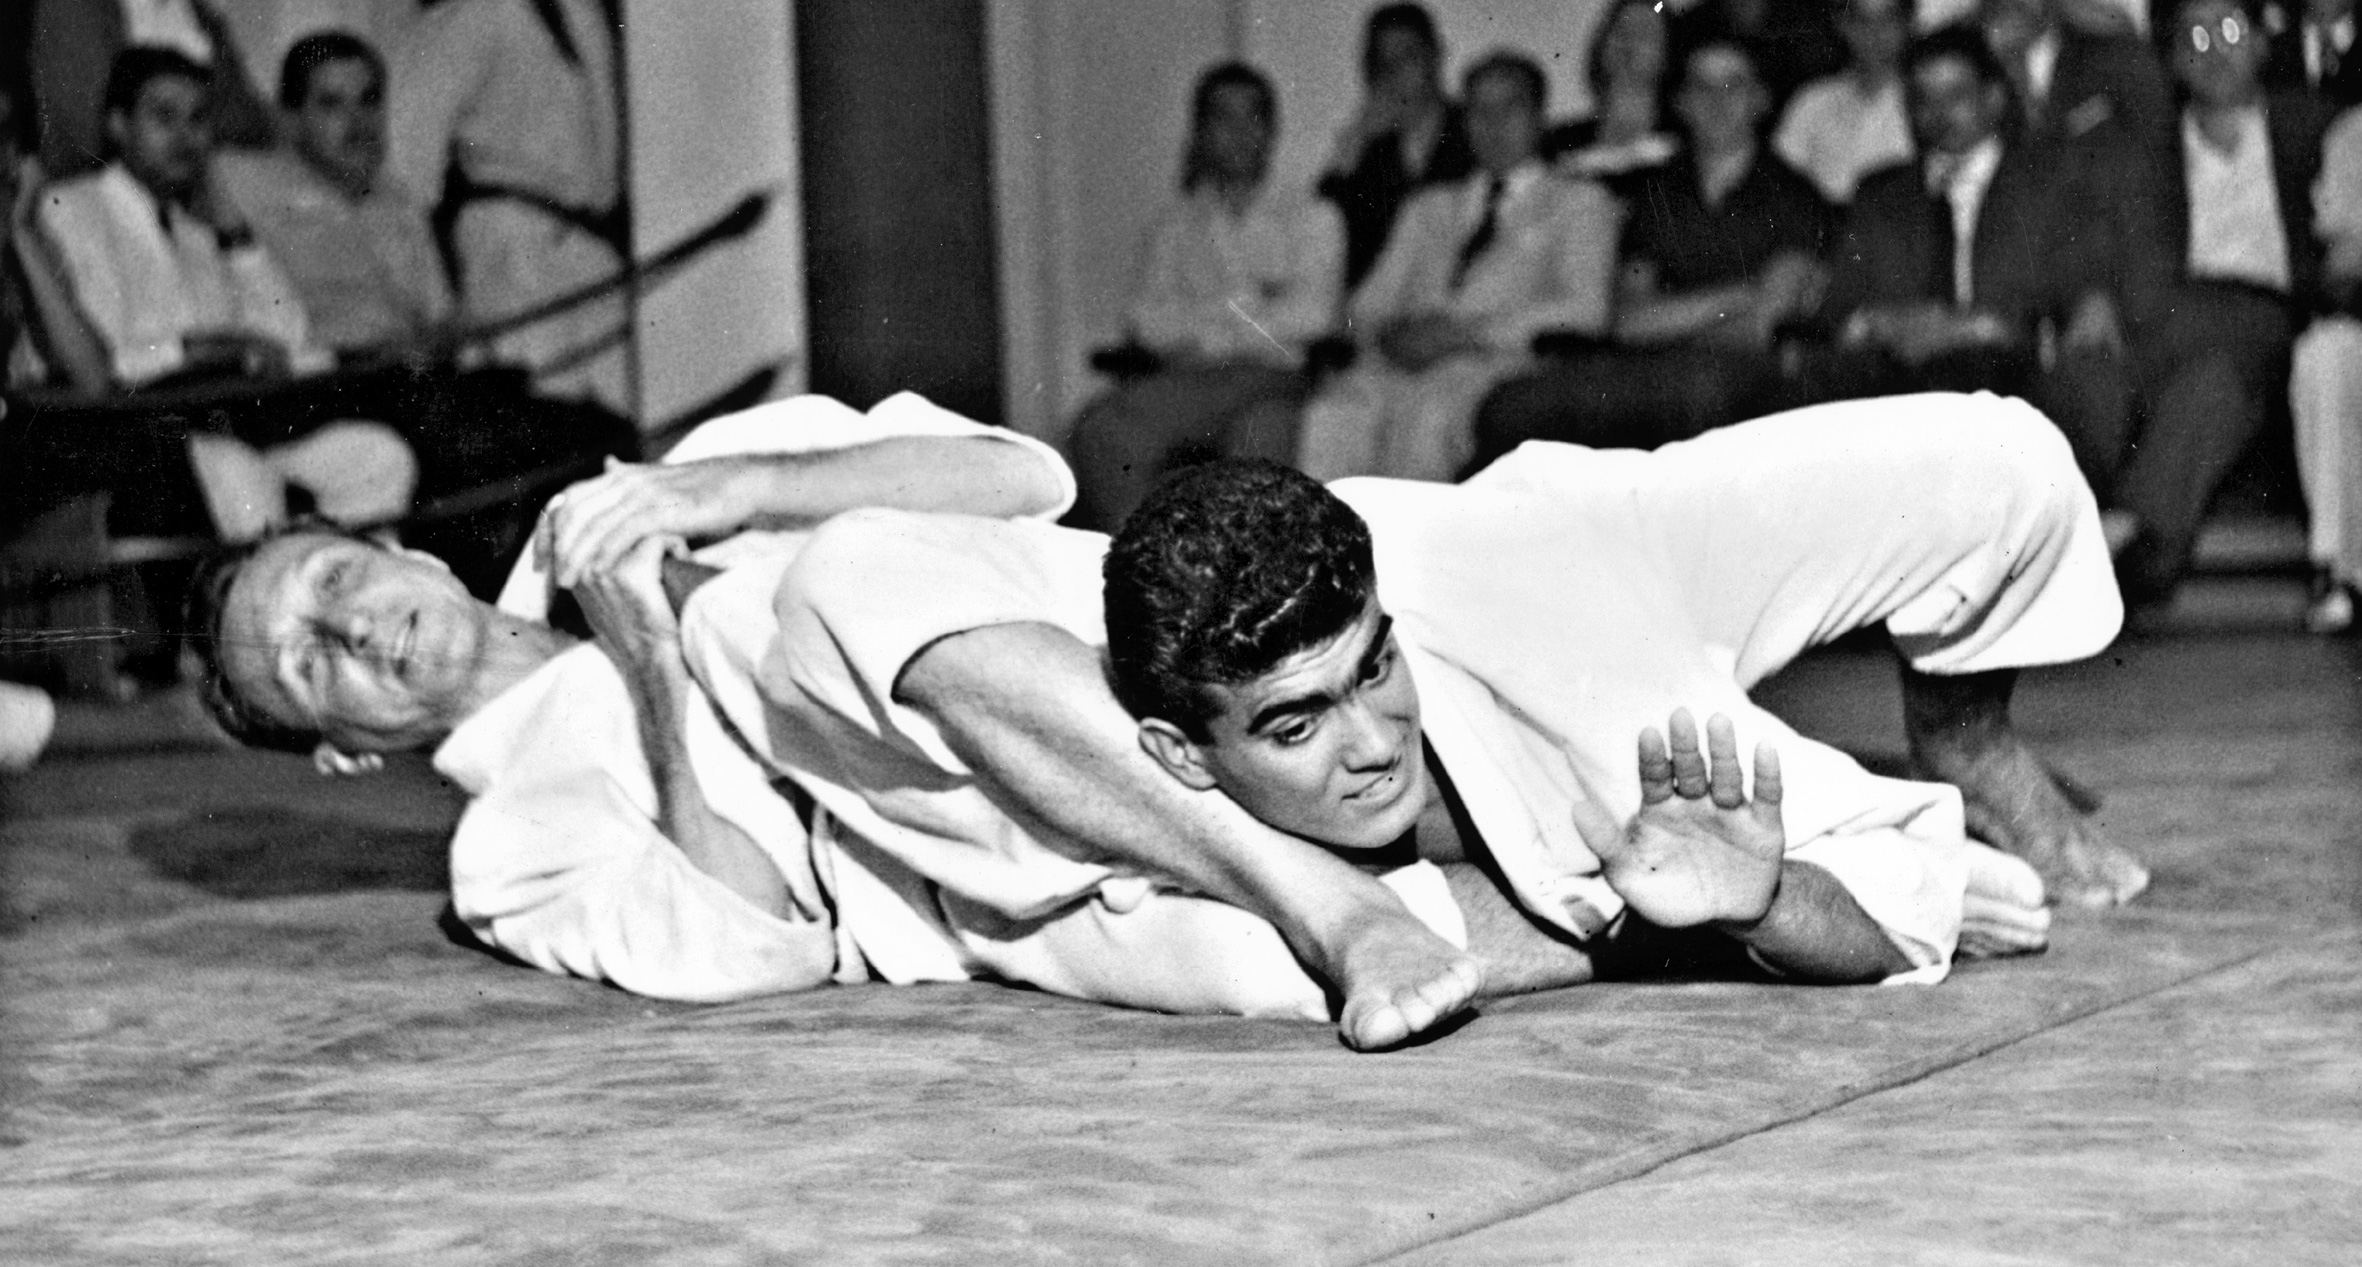 A Gracie Challenge match.